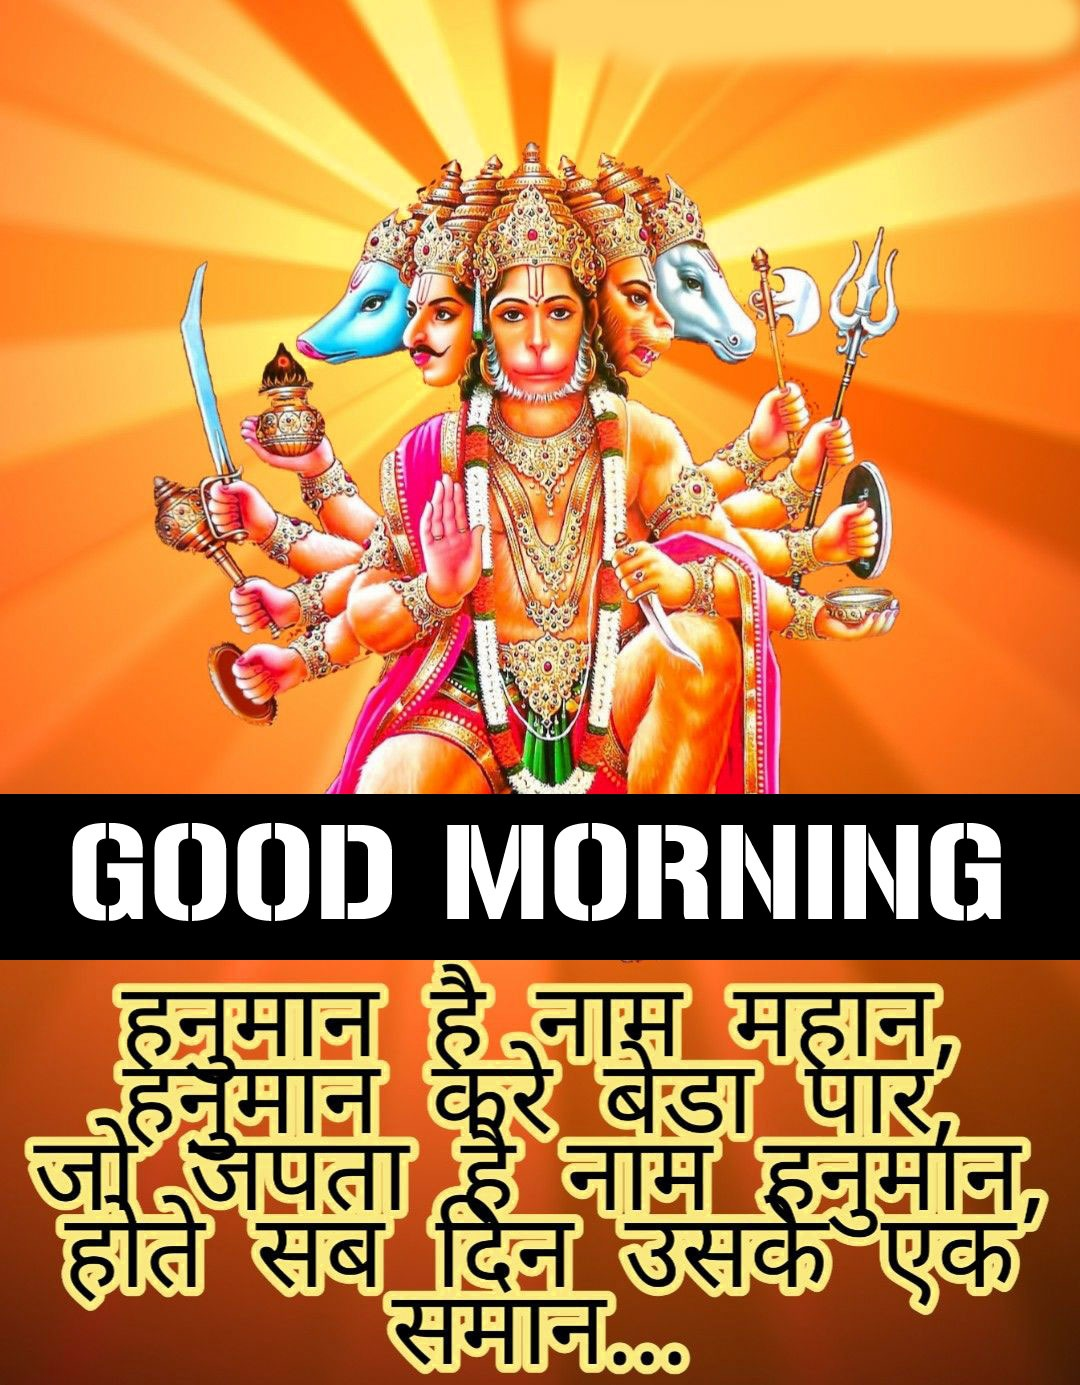 Lord Hanuman Ji Good Morning Images